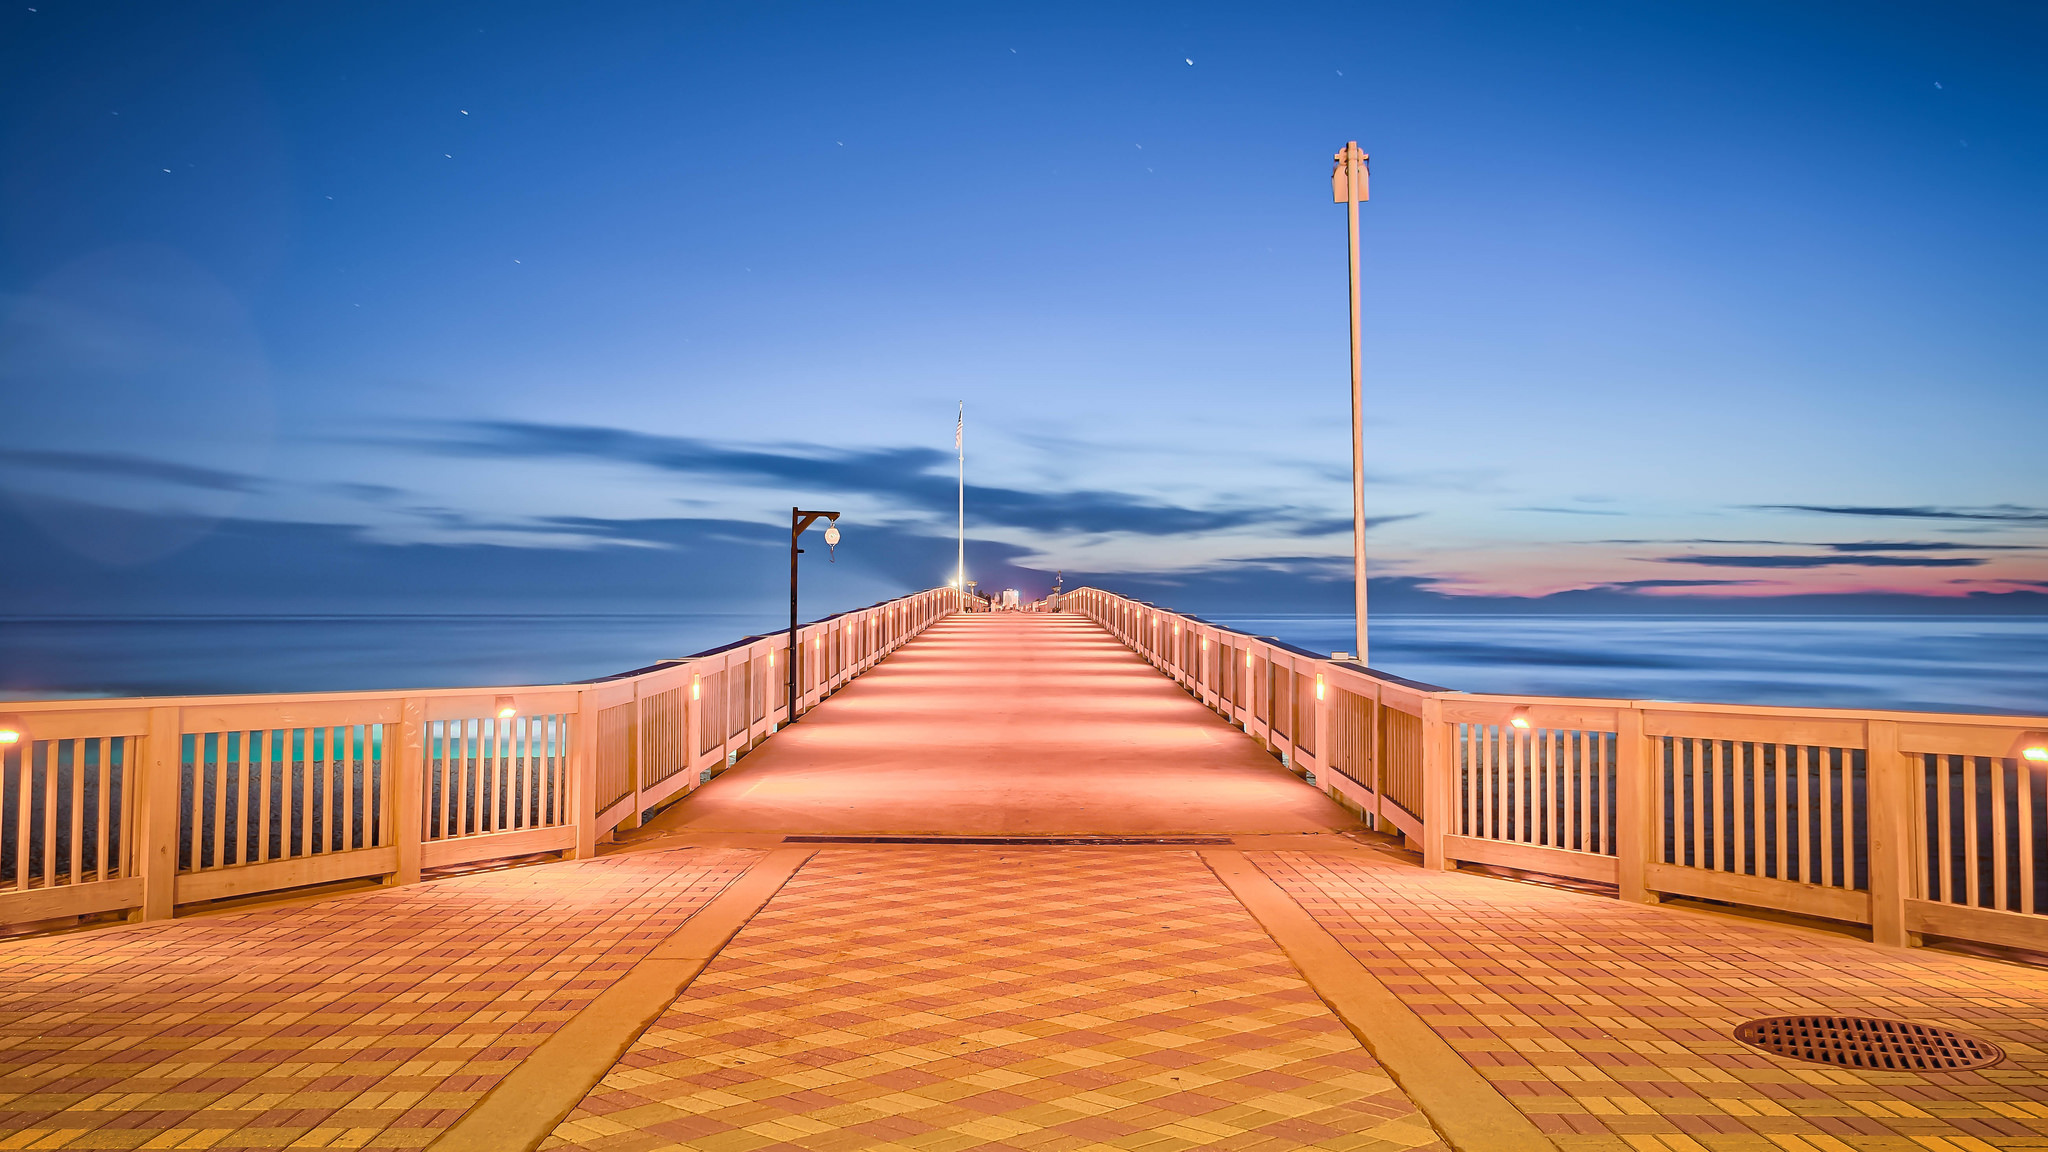 entrance to the pier at Pier Park in Panama City Beach, FL